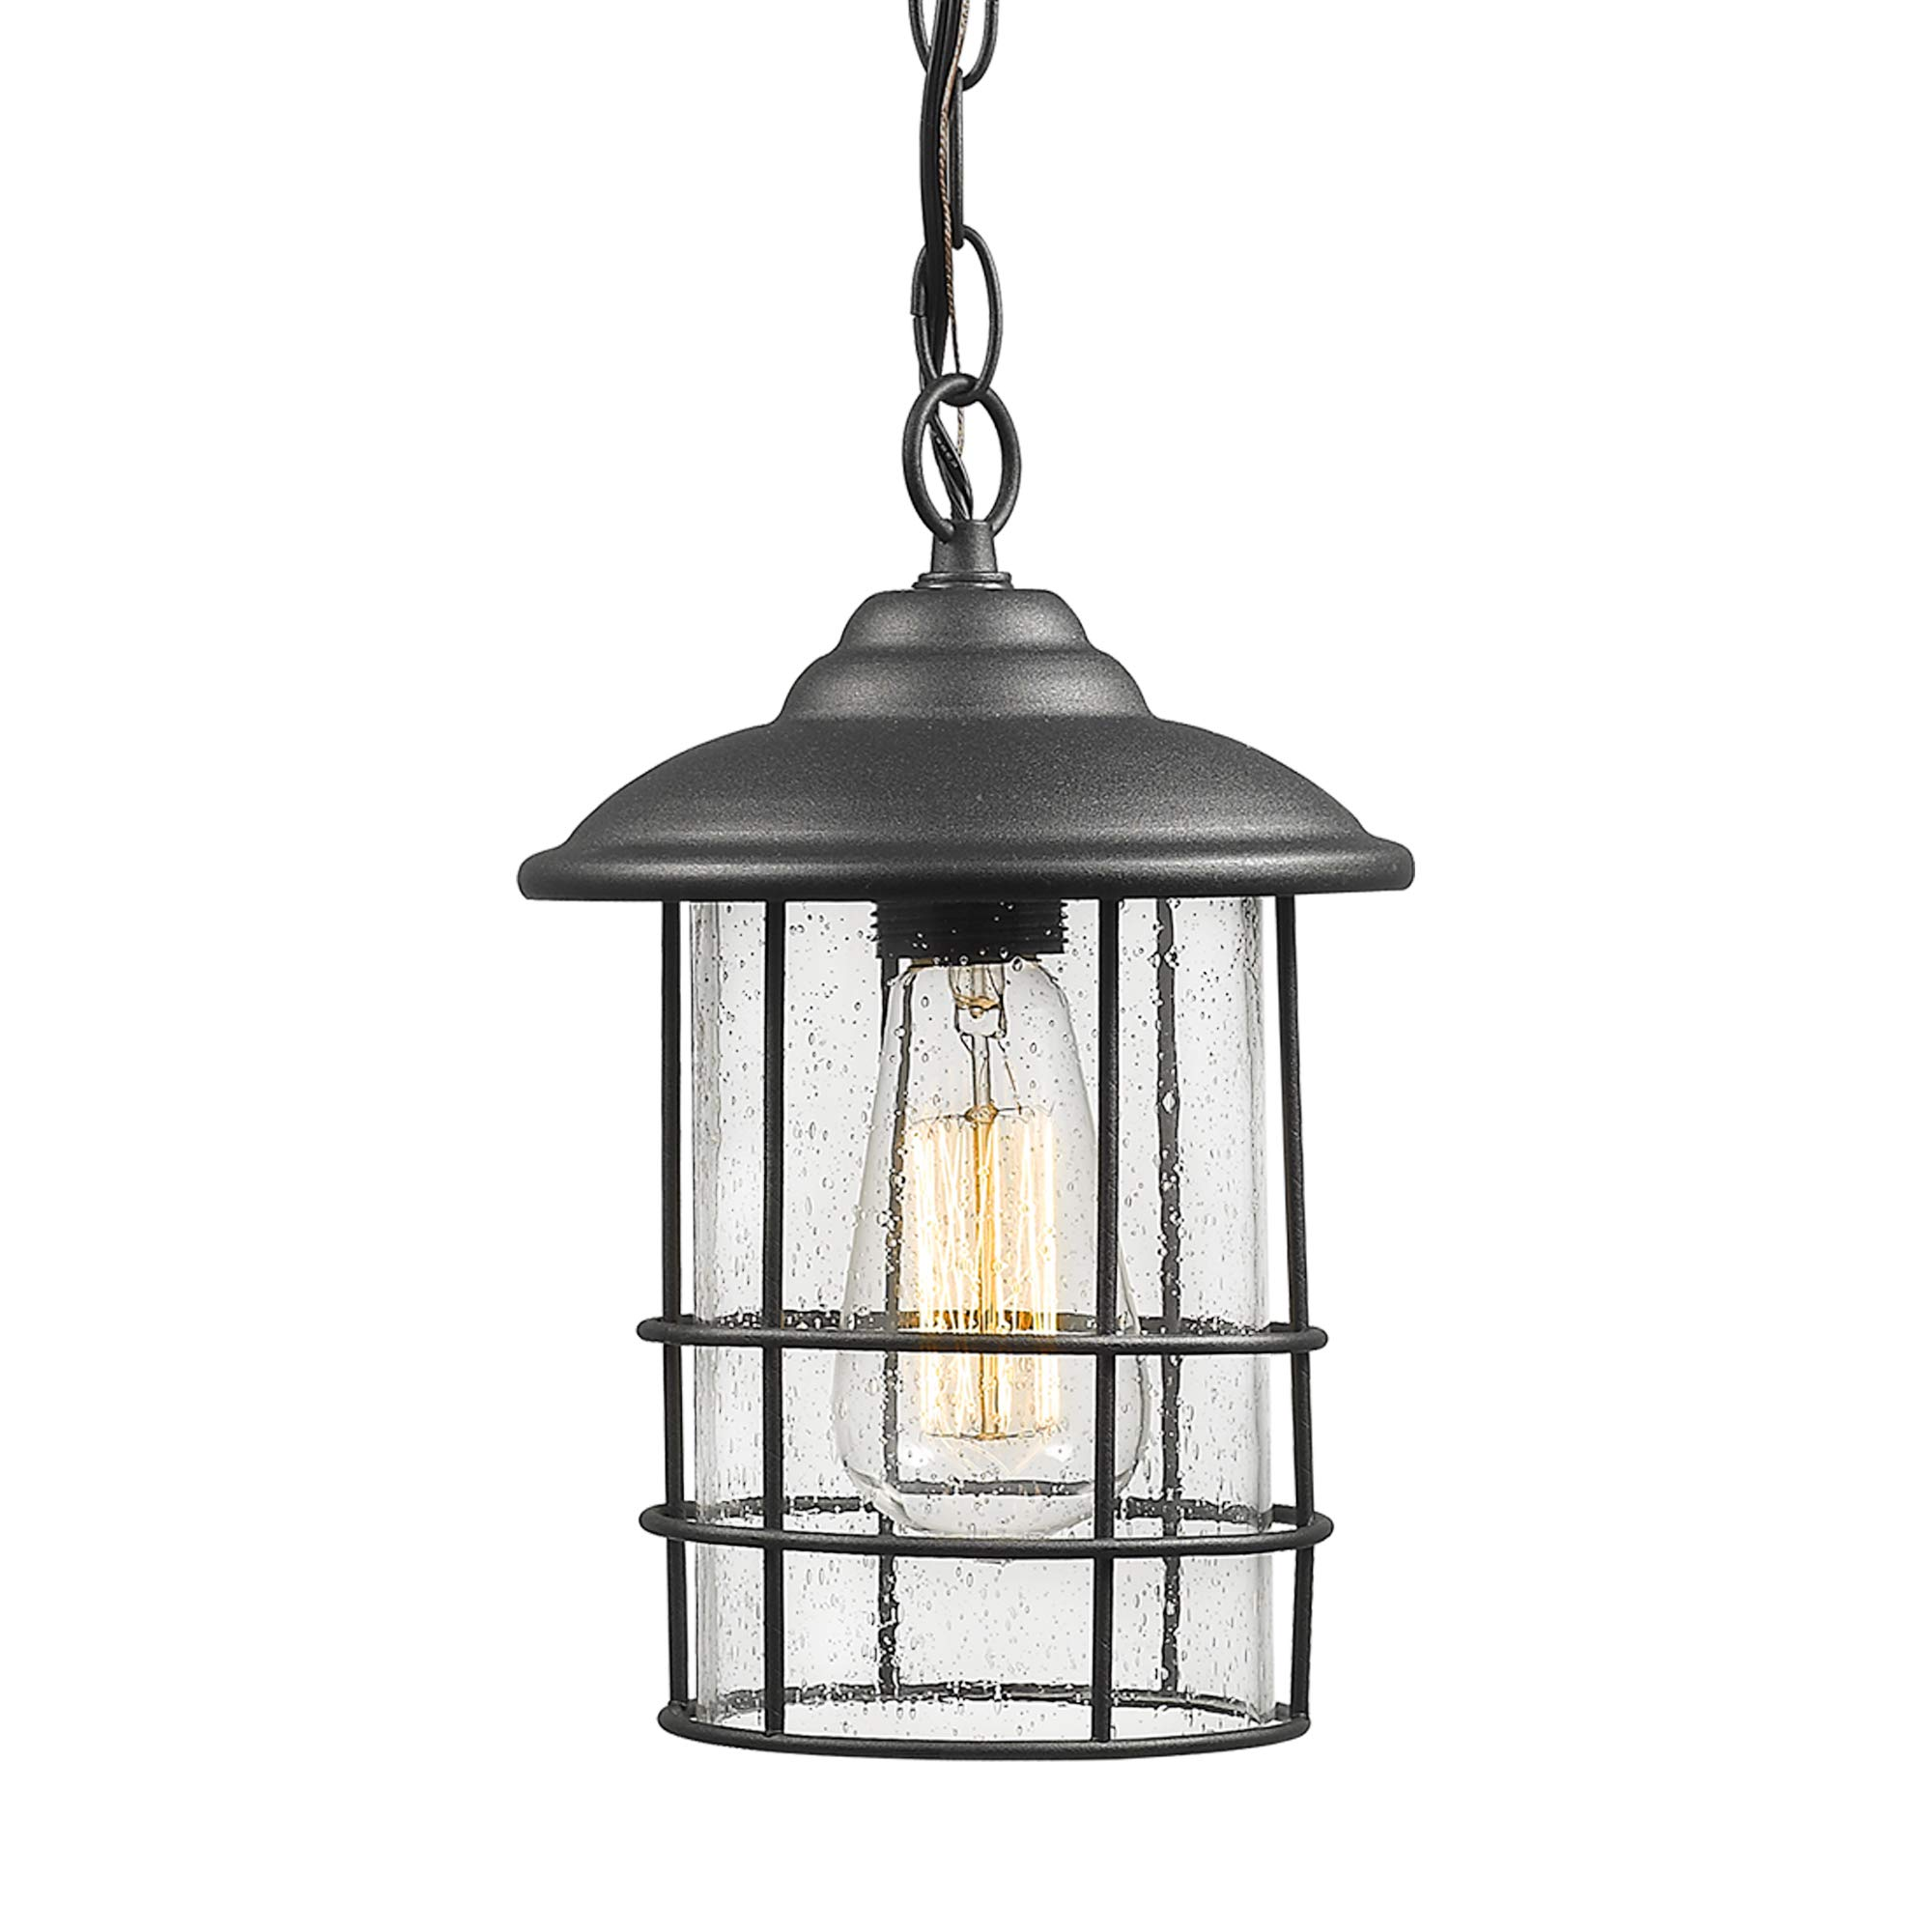 Emliviar 1-Light Outdoor Pendant Light, Exterior Hanging Lantern in Black Finish with Seeded Glass, 1803CW2-H by EMLIVIAR